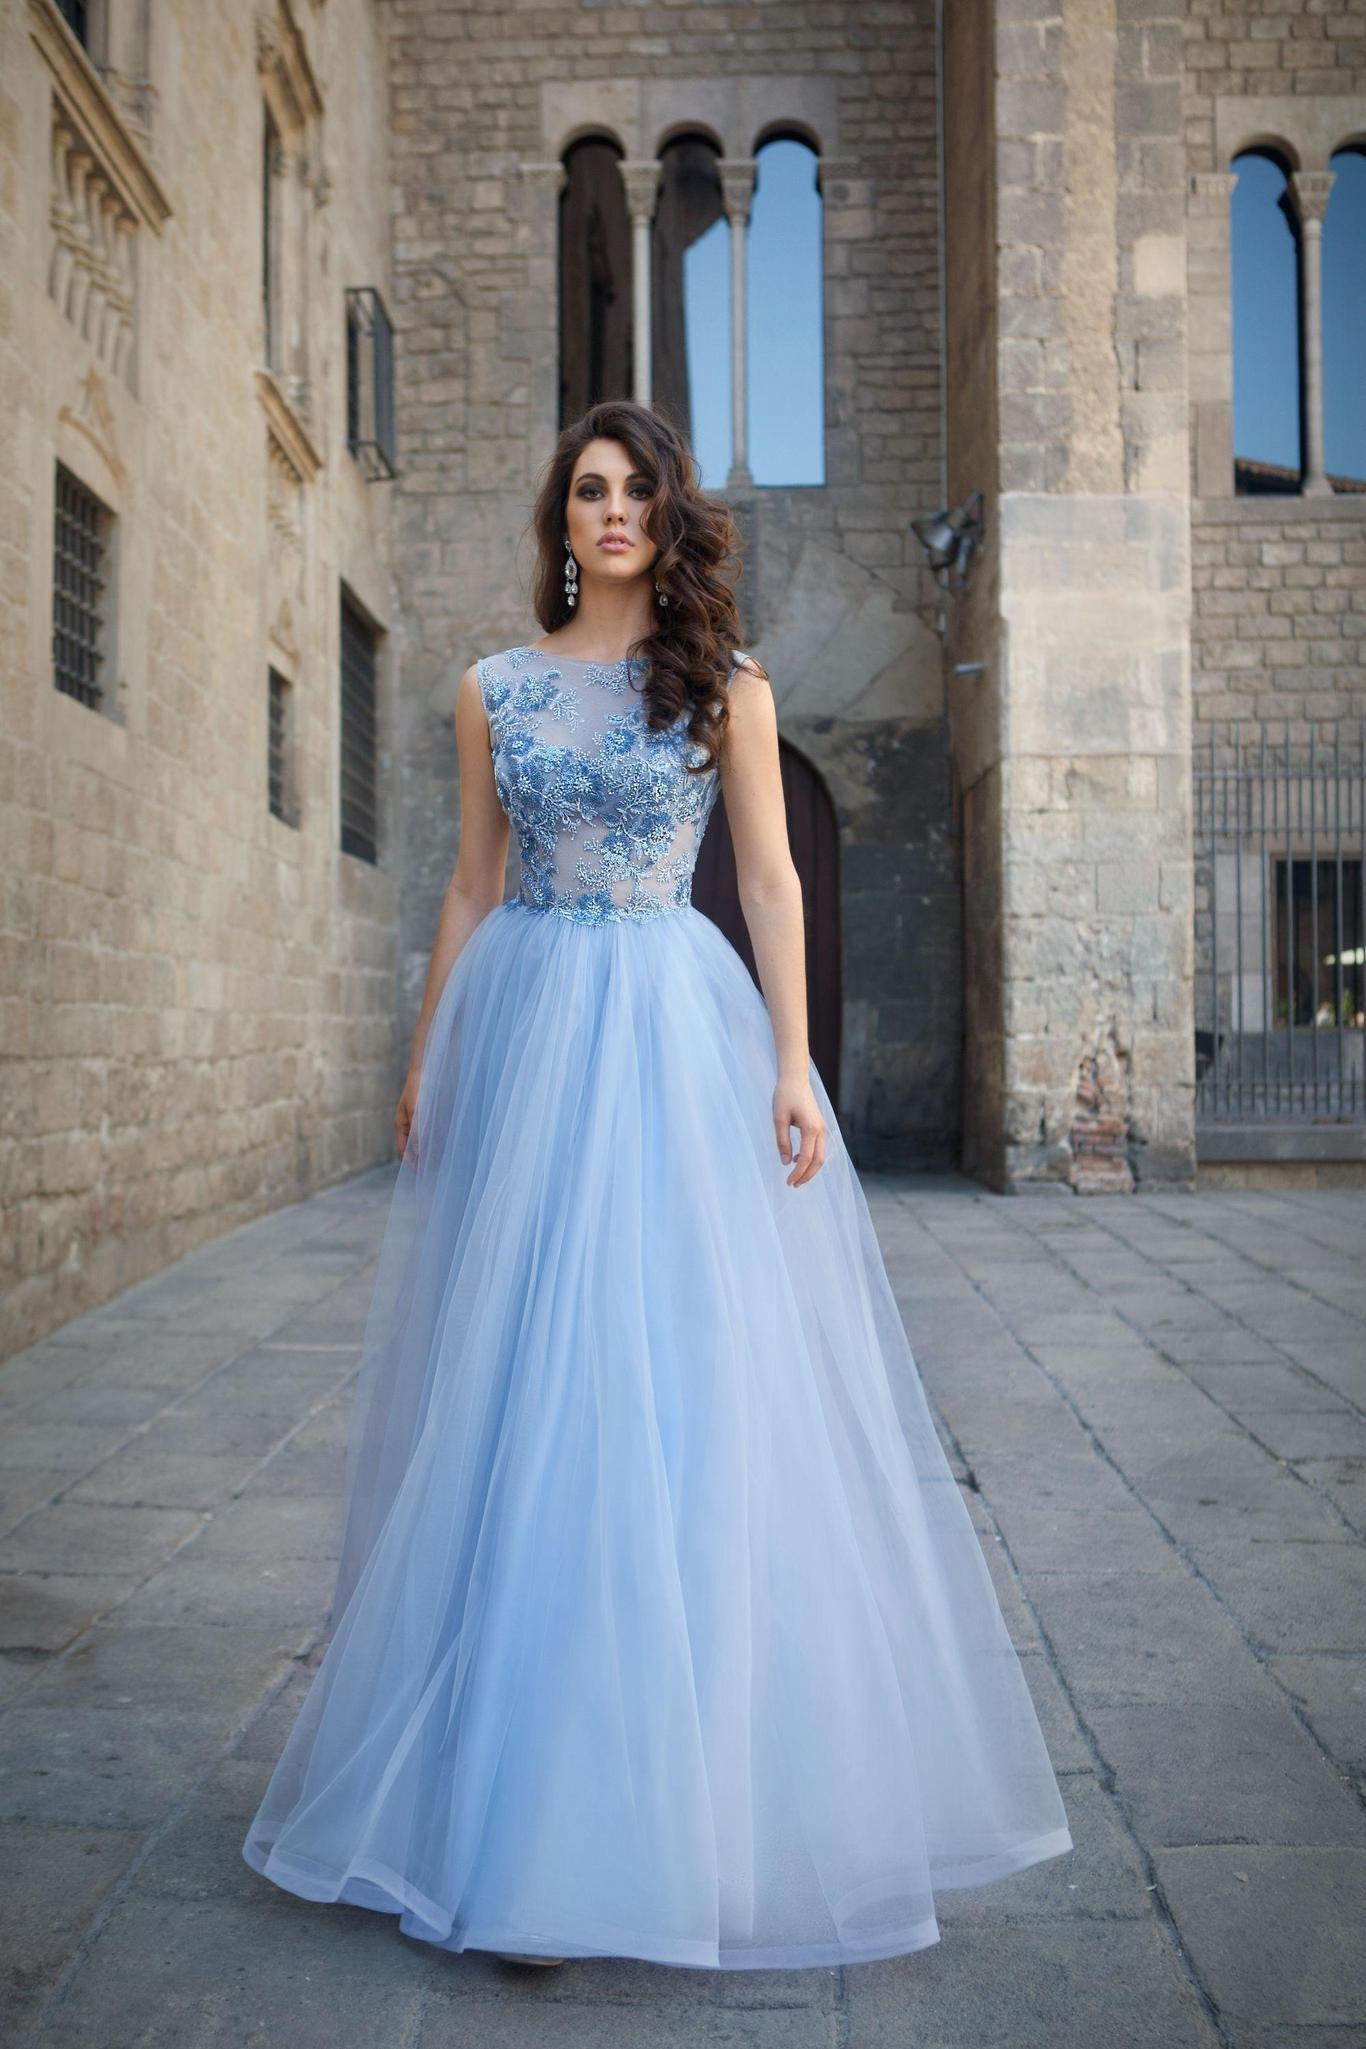 Periwinkle Blue Embroidered Lace and Tulle Ballgown